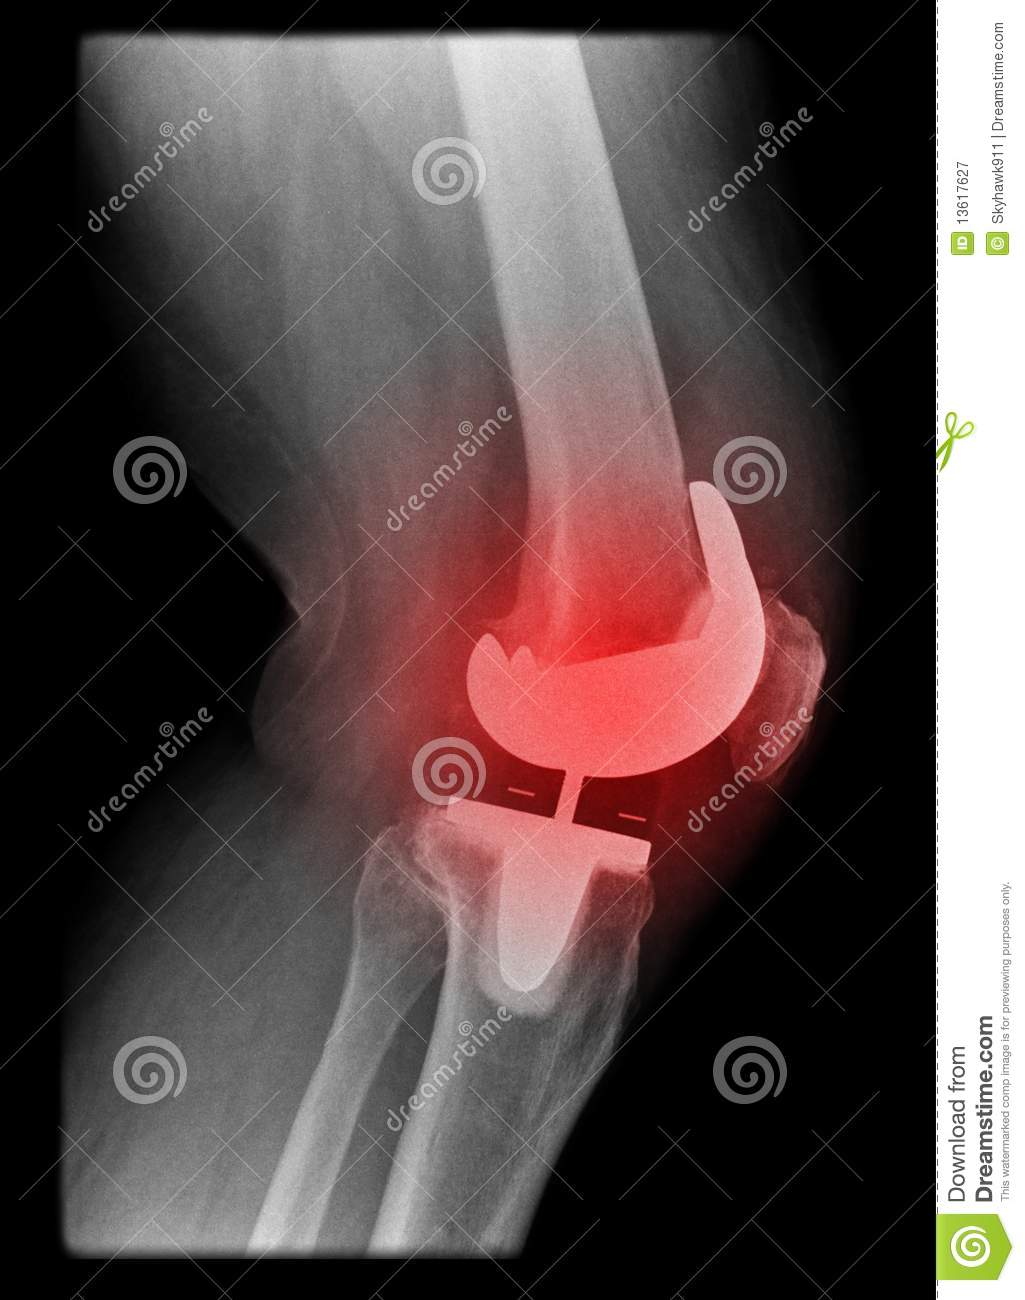 Painfull Knee Replacement Royalty Free Stock Photography